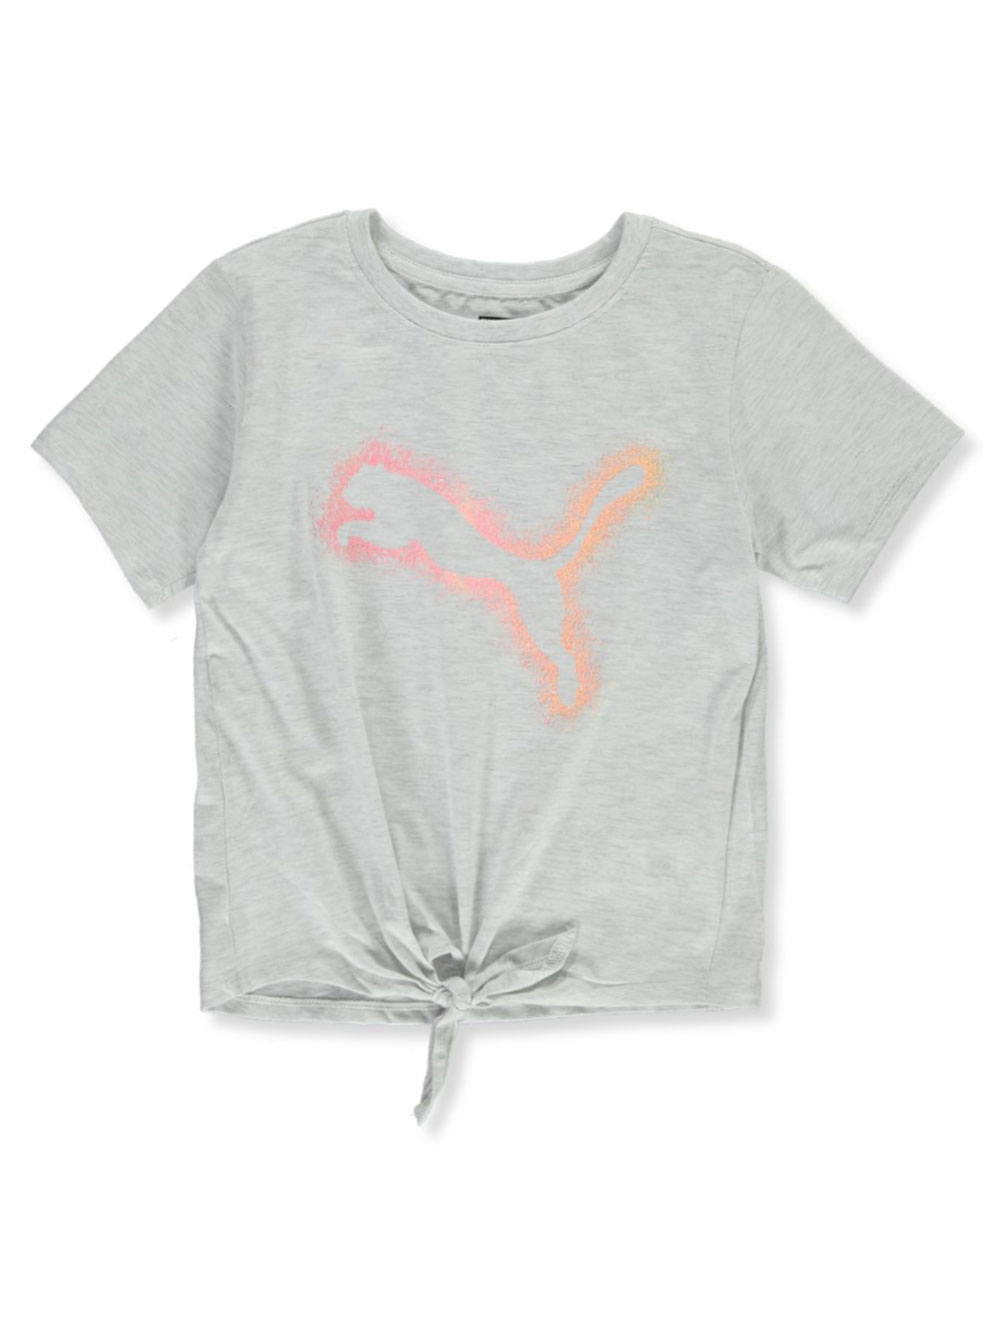 Size 8-10 T-Shirts for Girls